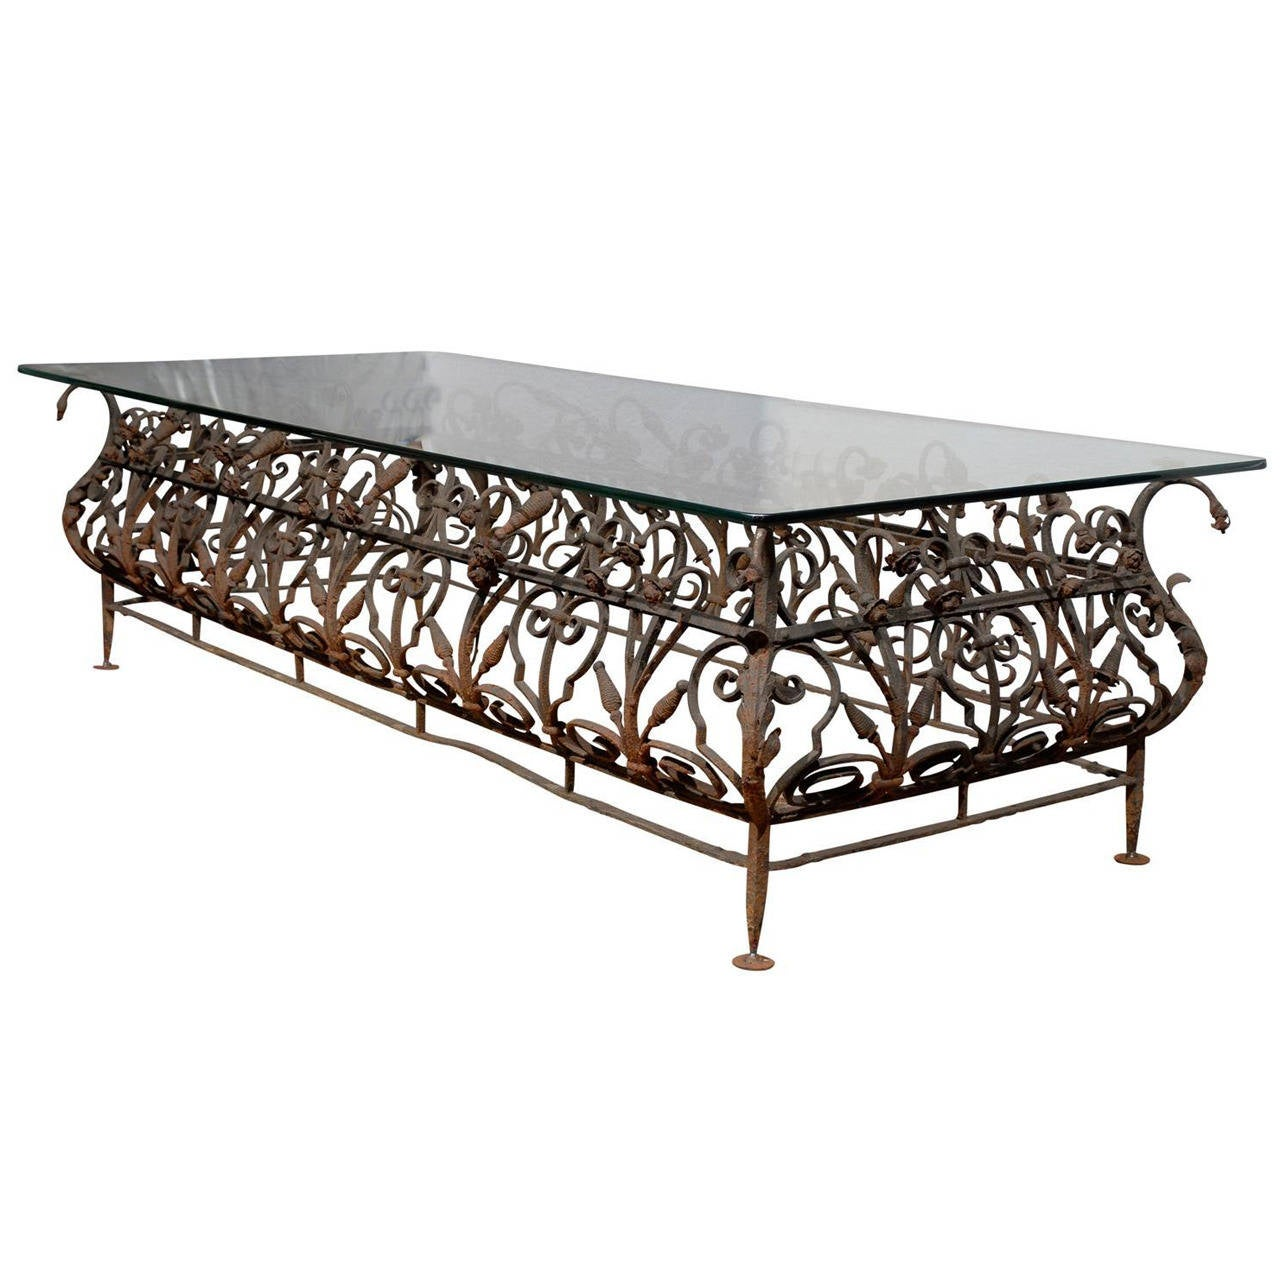 Austrian mid 19th century large size wrought iron and glass top coffee table for sale at 1stdibs Large glass coffee table